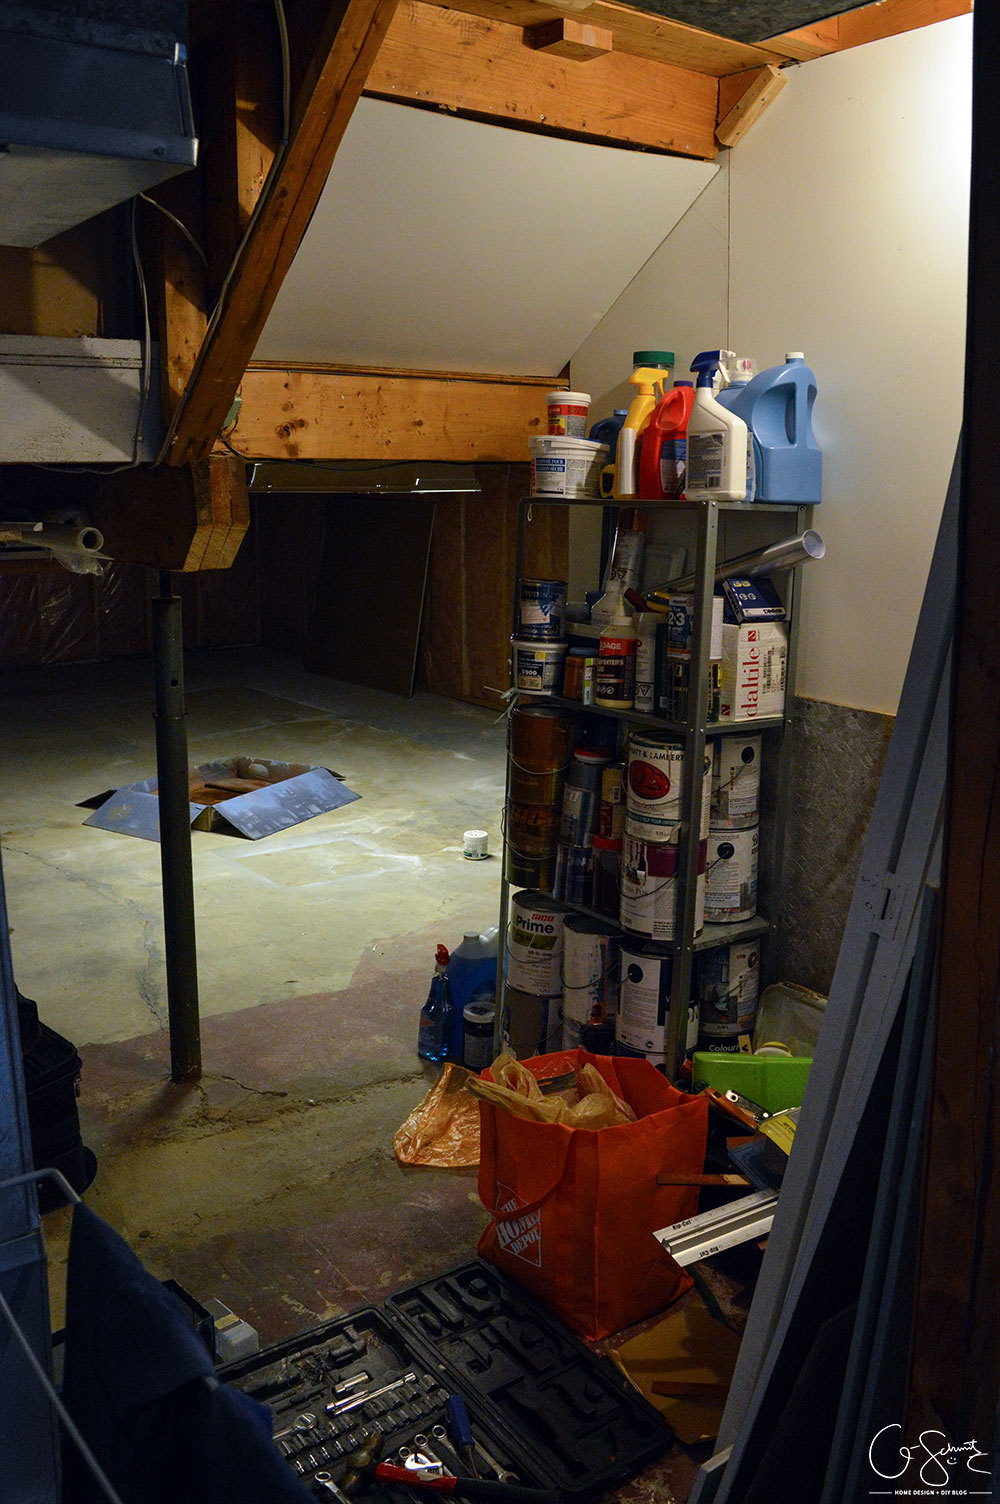 Our unfinished laundry room is dark, dingy, cobweb-y and rough... but every place needs a starting point - at least it's functional :)